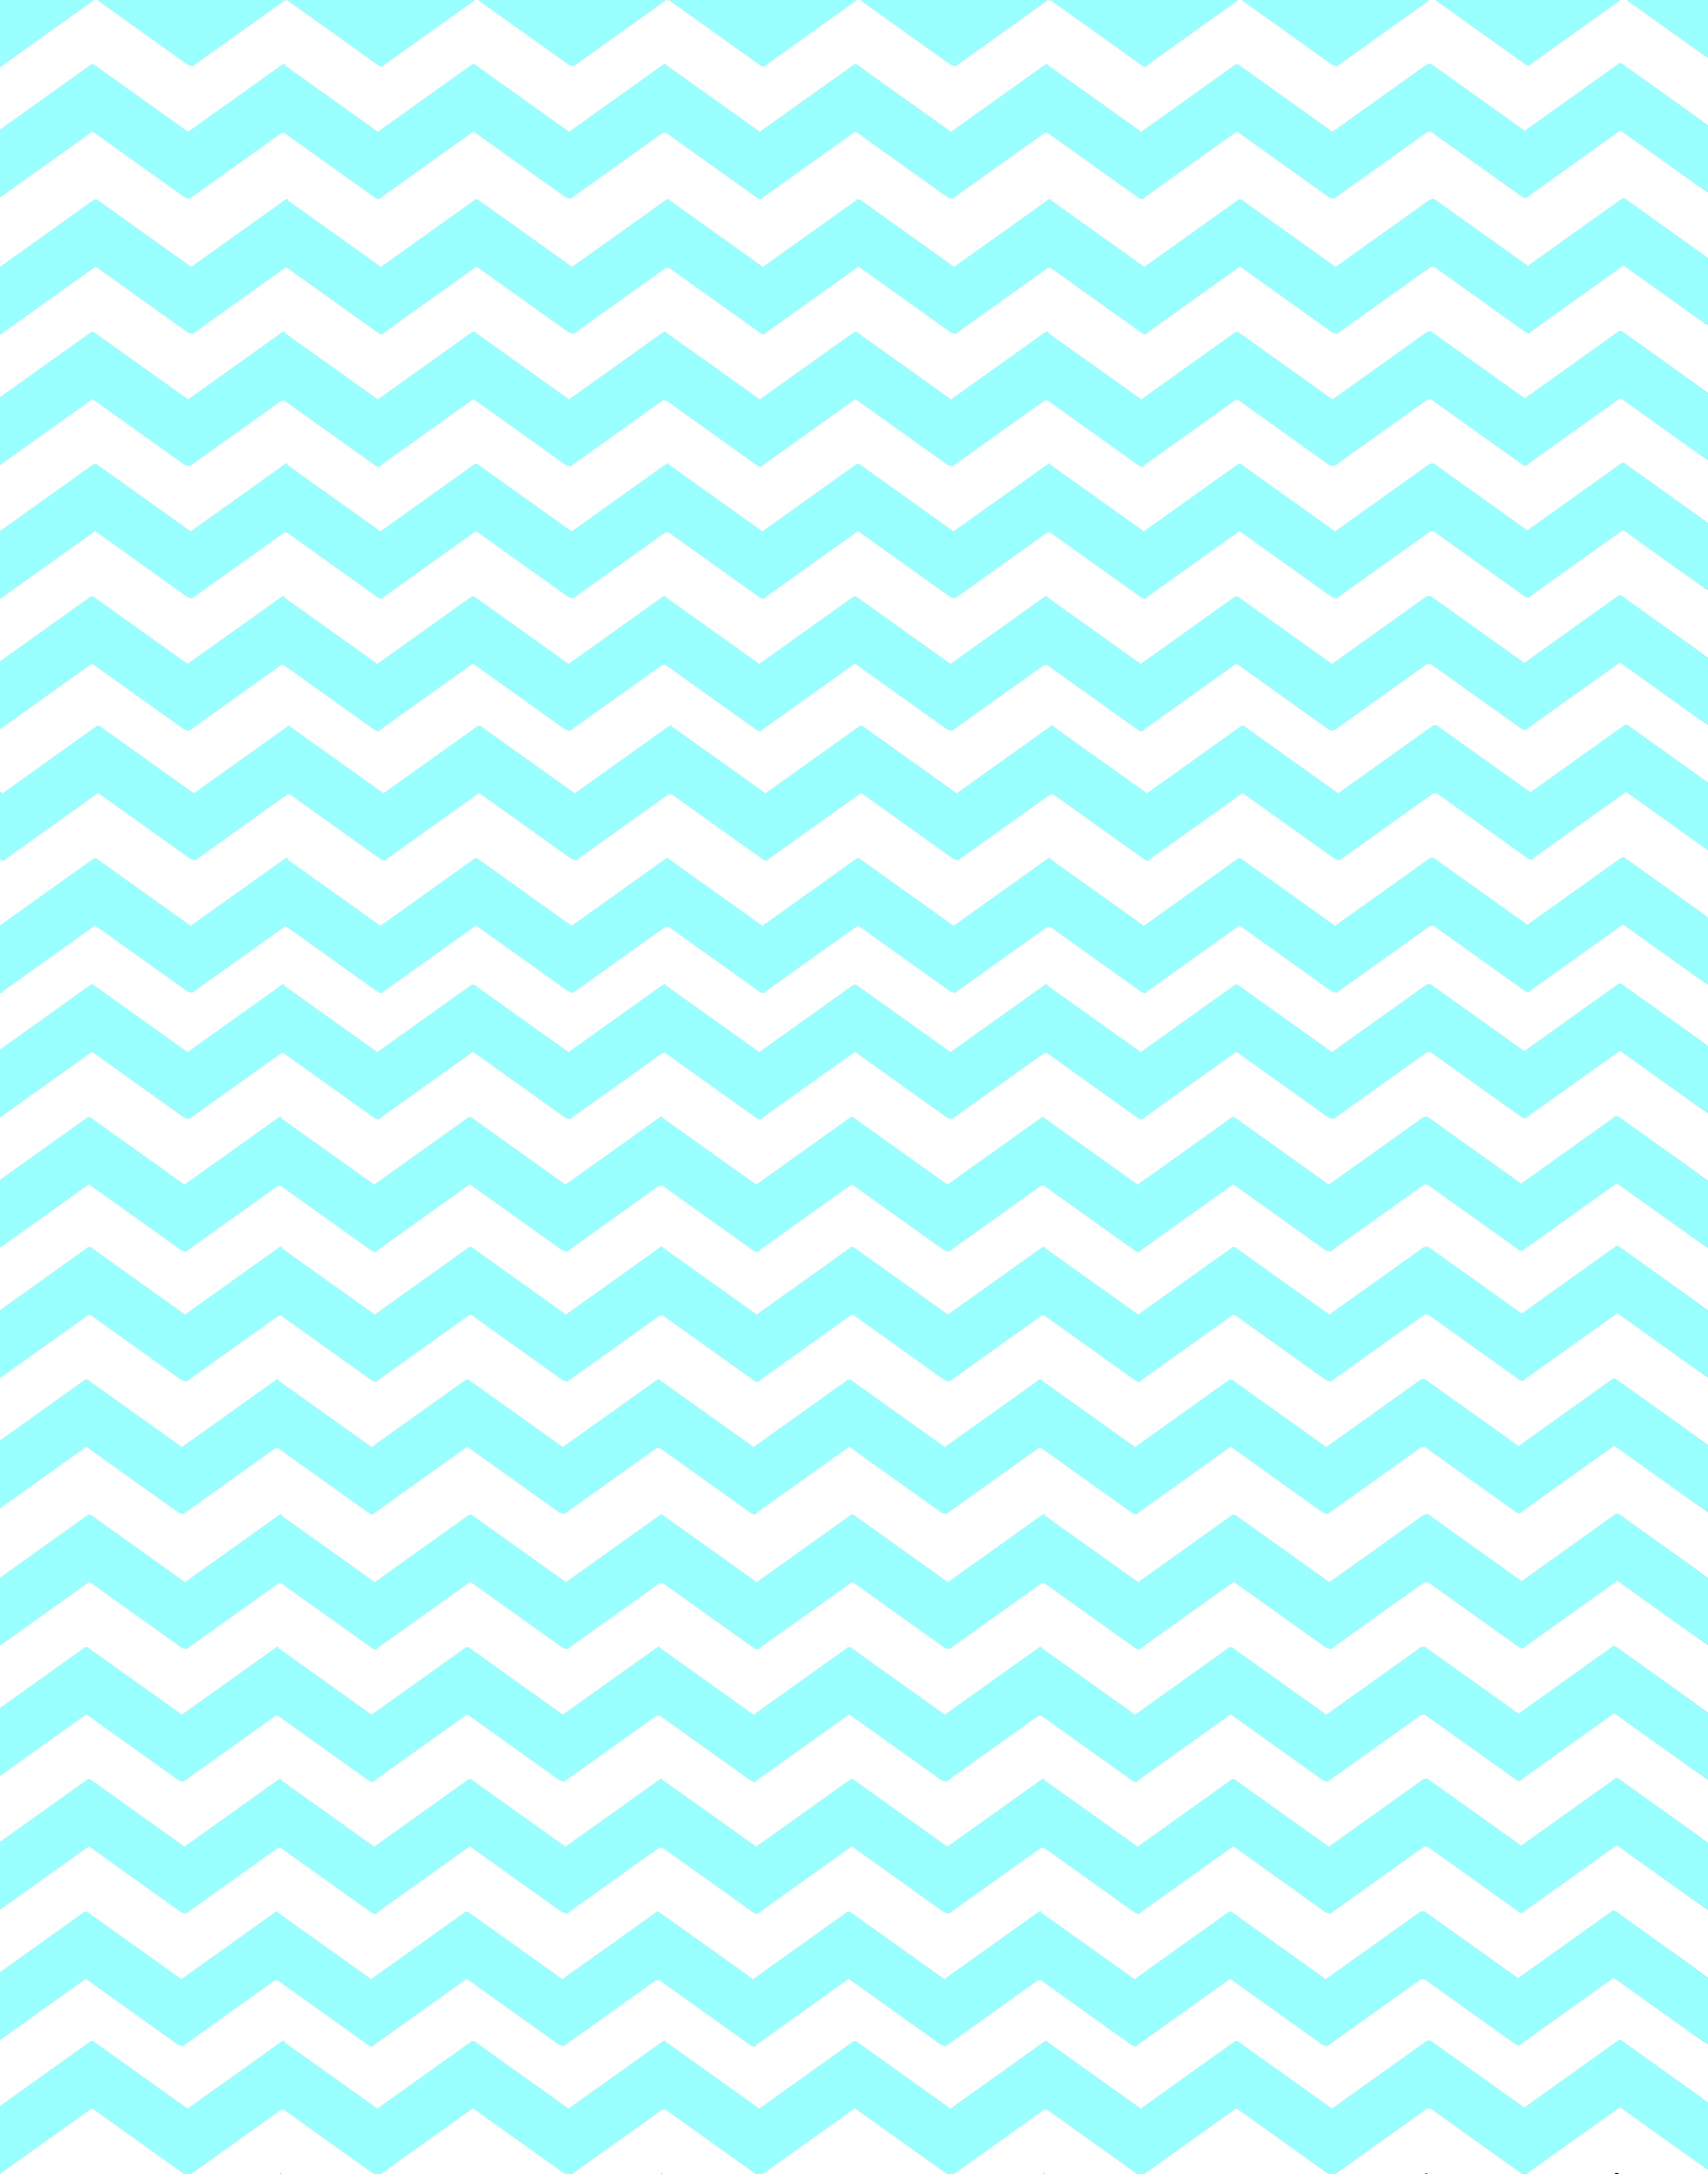 Teal And White Chevron Wallpaper Wallpapersafari